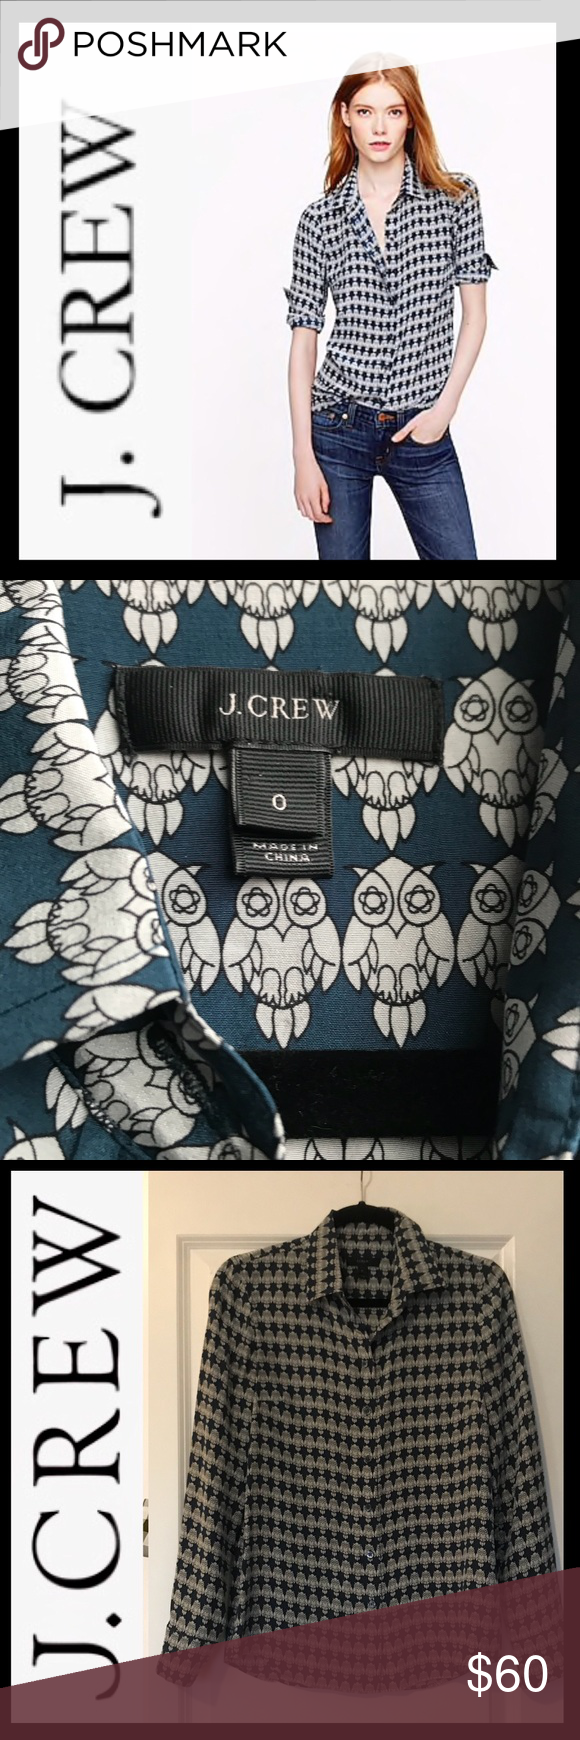 b6b6141f J.Crew Boy Silk Boy Blouse in Owl Print J.CREW Silk Boy Shirt in Owl Print  🦉 • Sz 0 • 100% Silk • Long roll up sleeves • Functional Buttons at Cuffs  ...